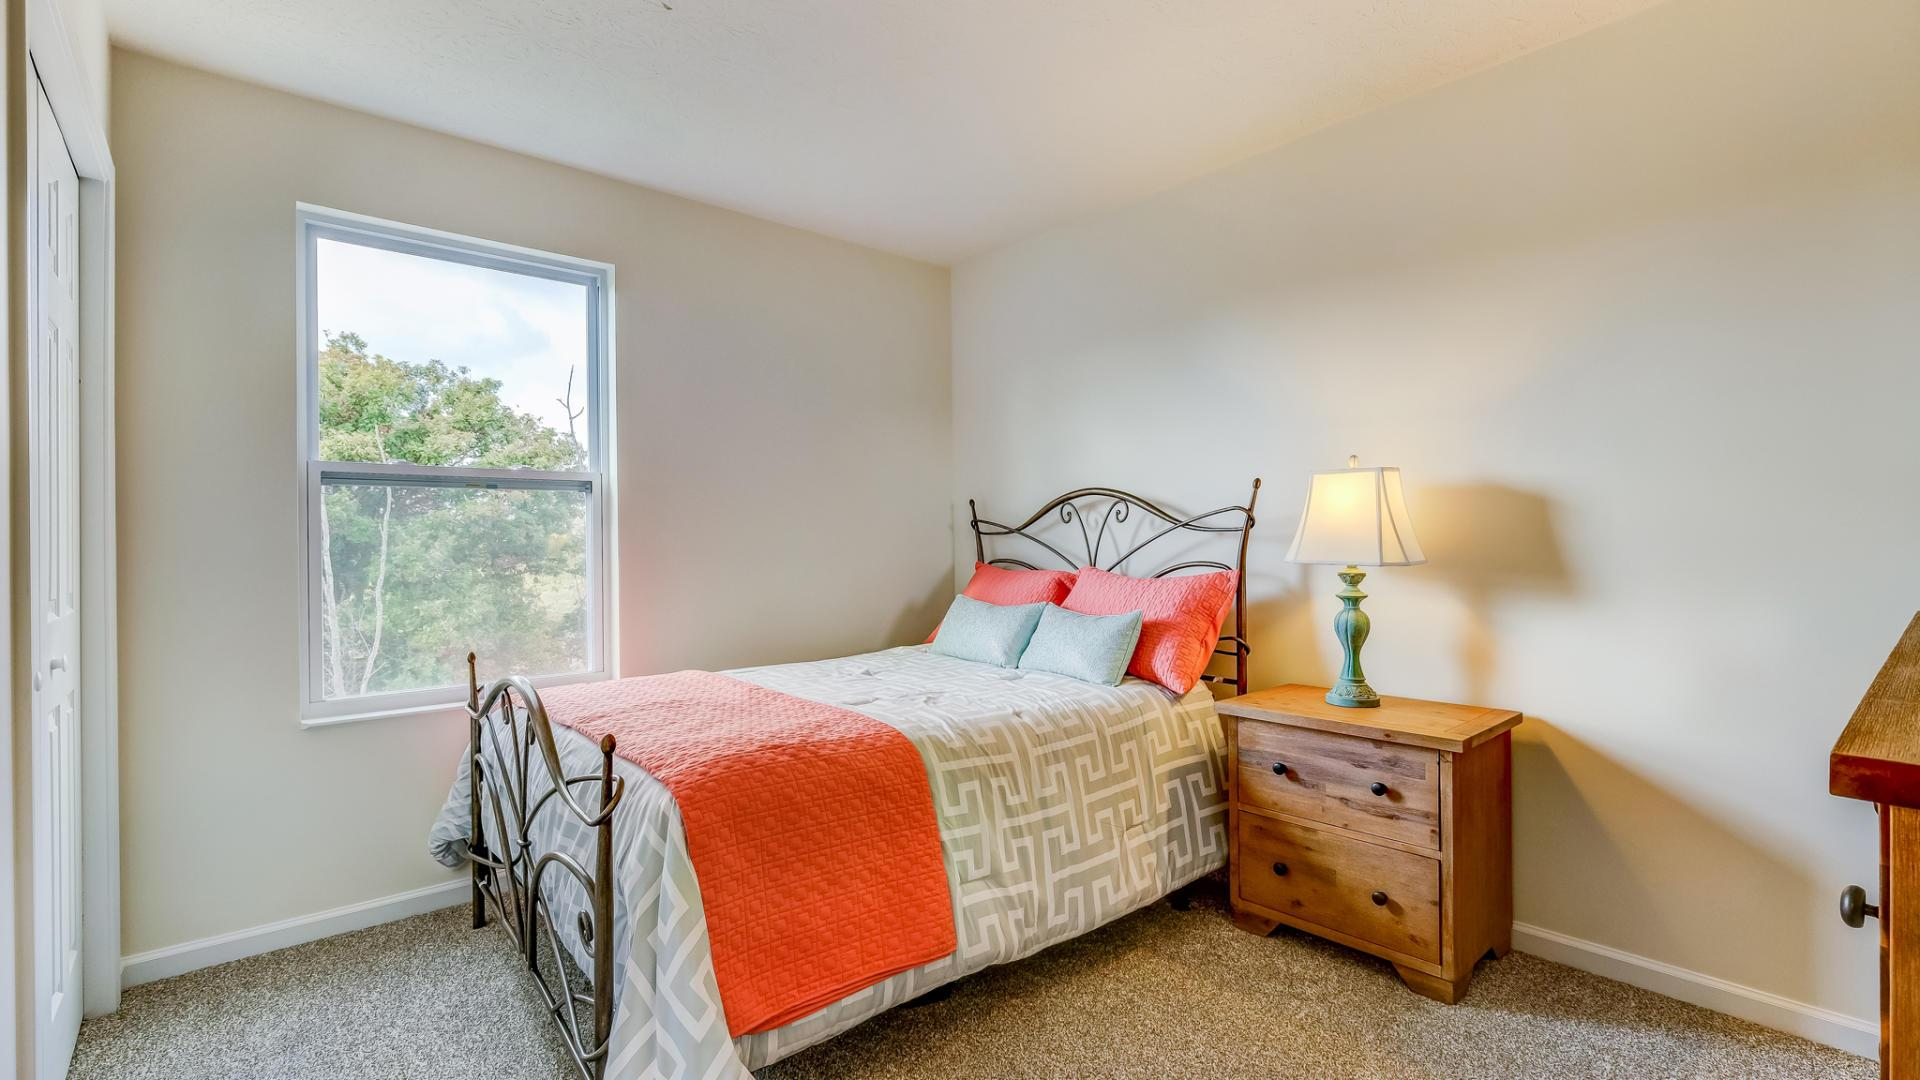 Bedroom featured in the Dallas By Maronda Homes in Pittsburgh, PA